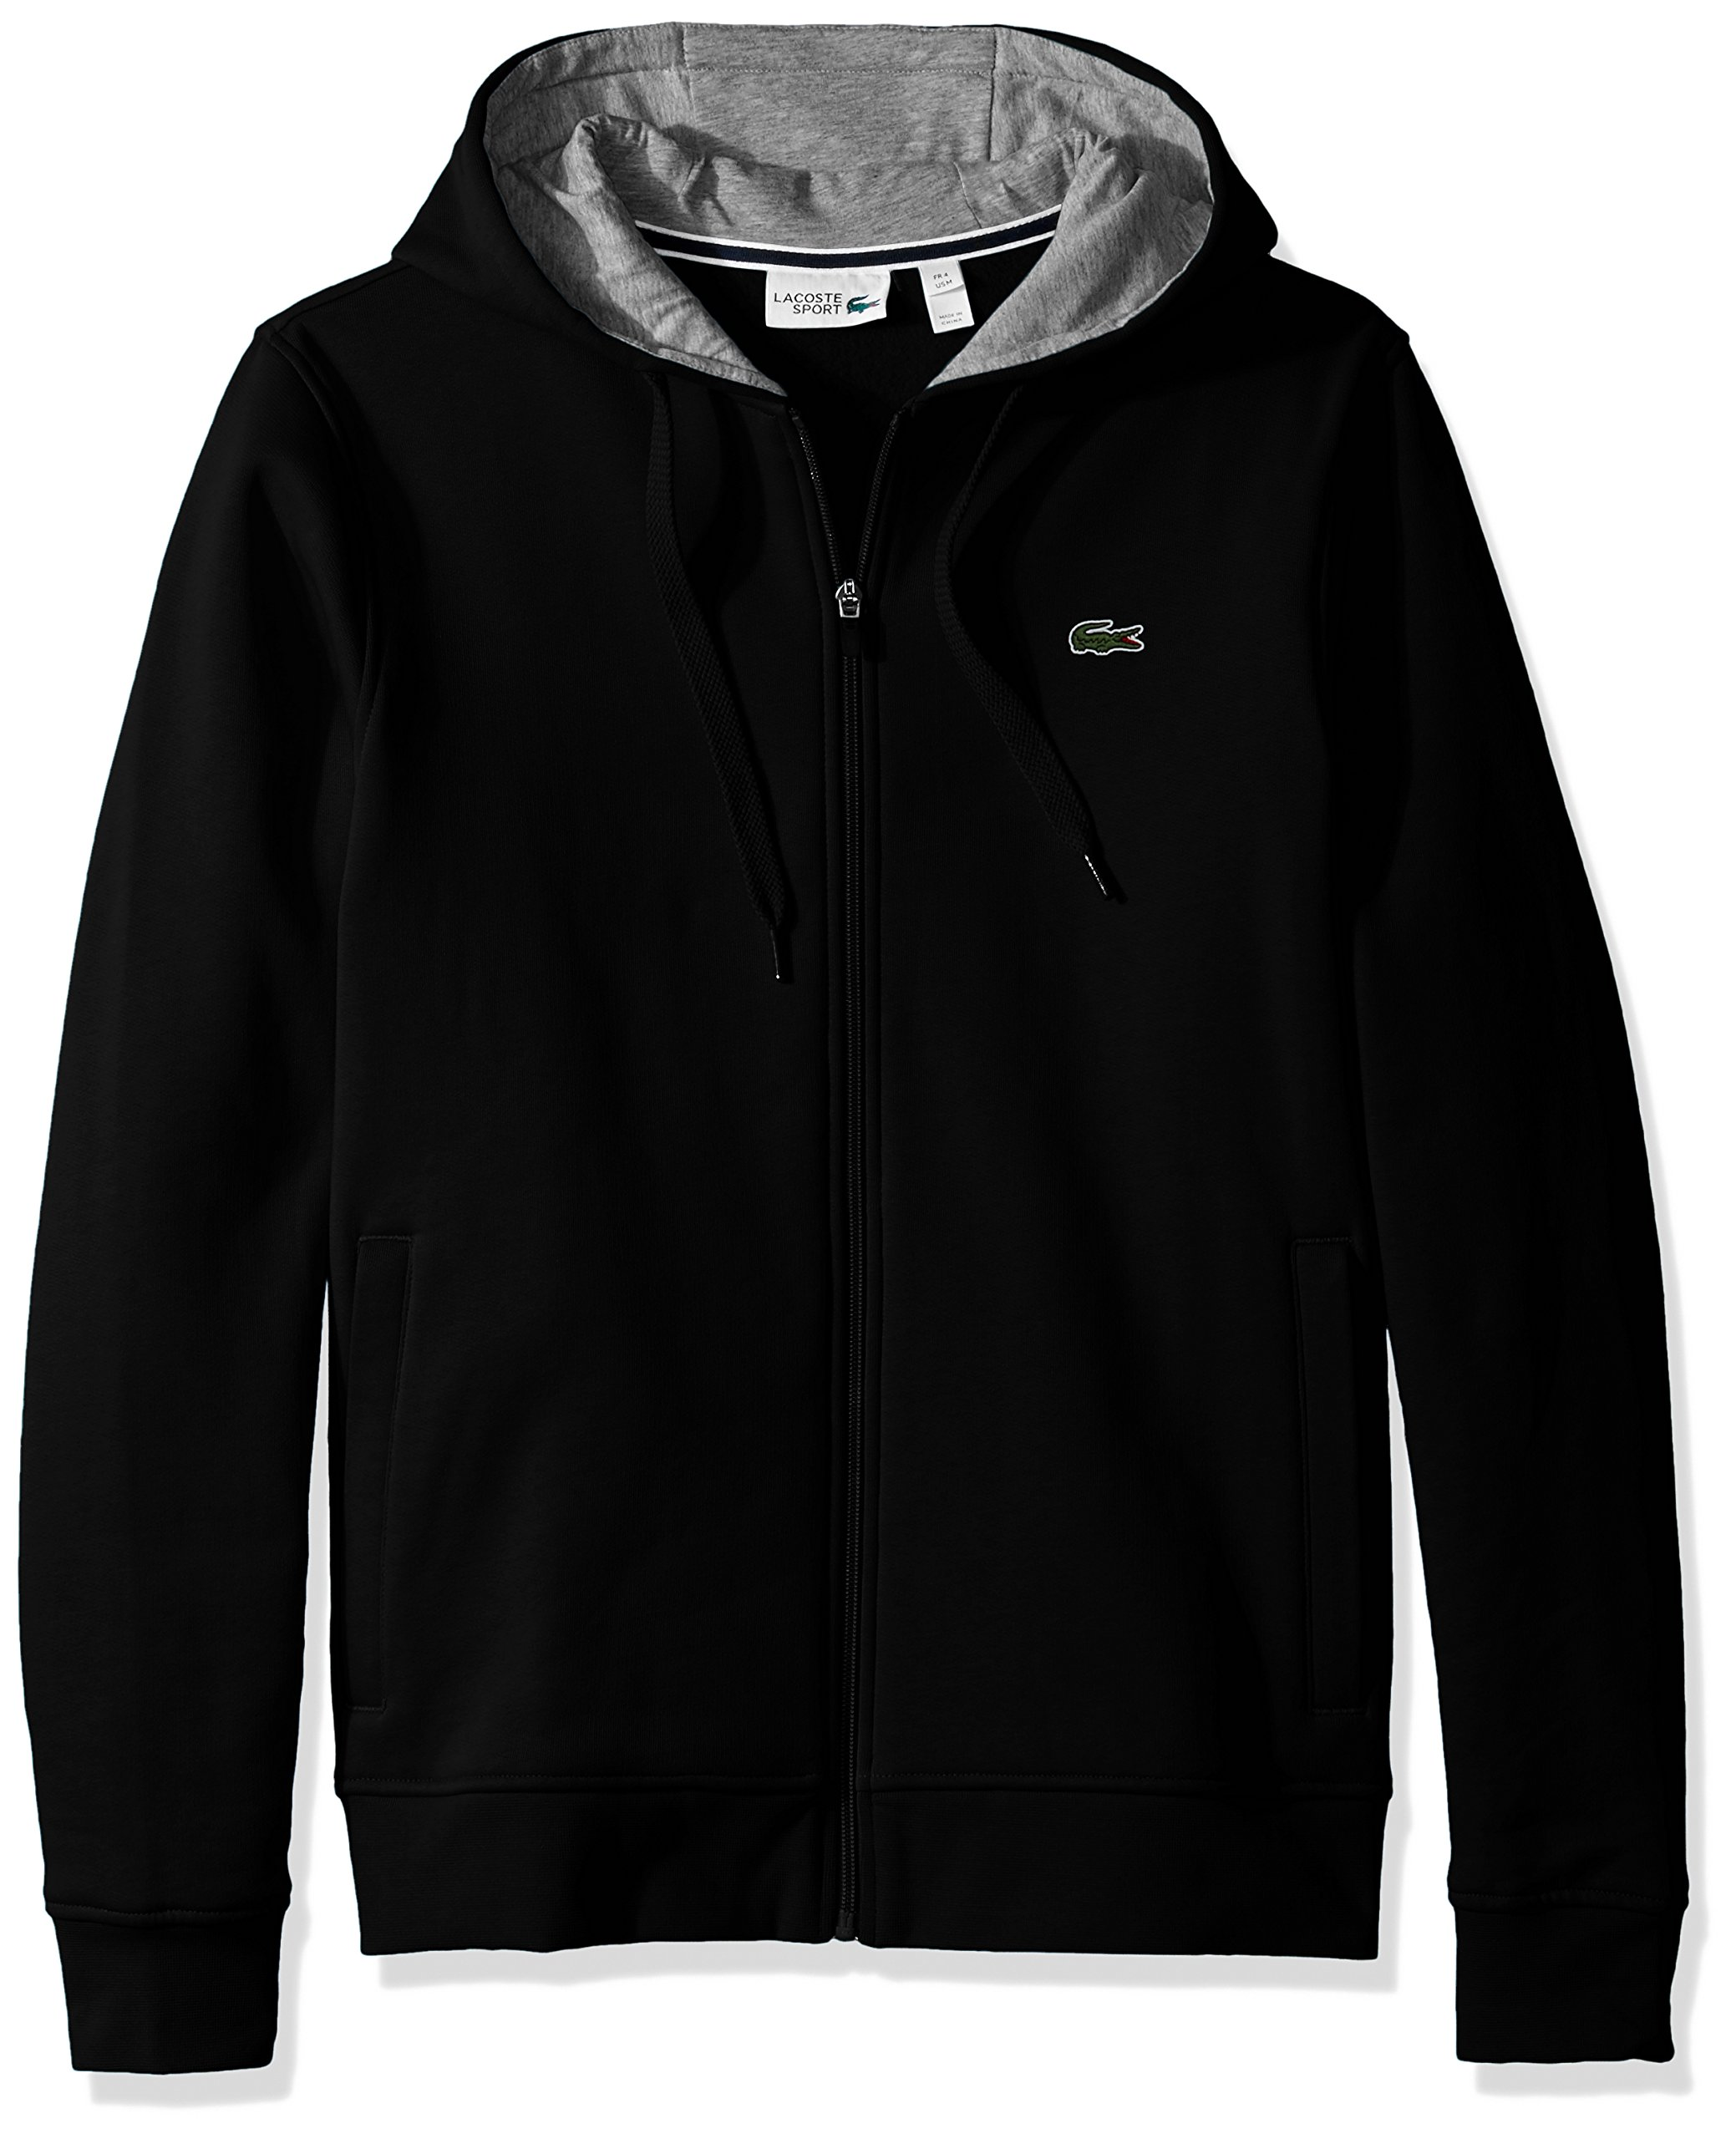 Lacoste Men's Full Zip Hoodie Fleece Sweatshirt, SH7609, Black/Silver Chine, XXX-Large